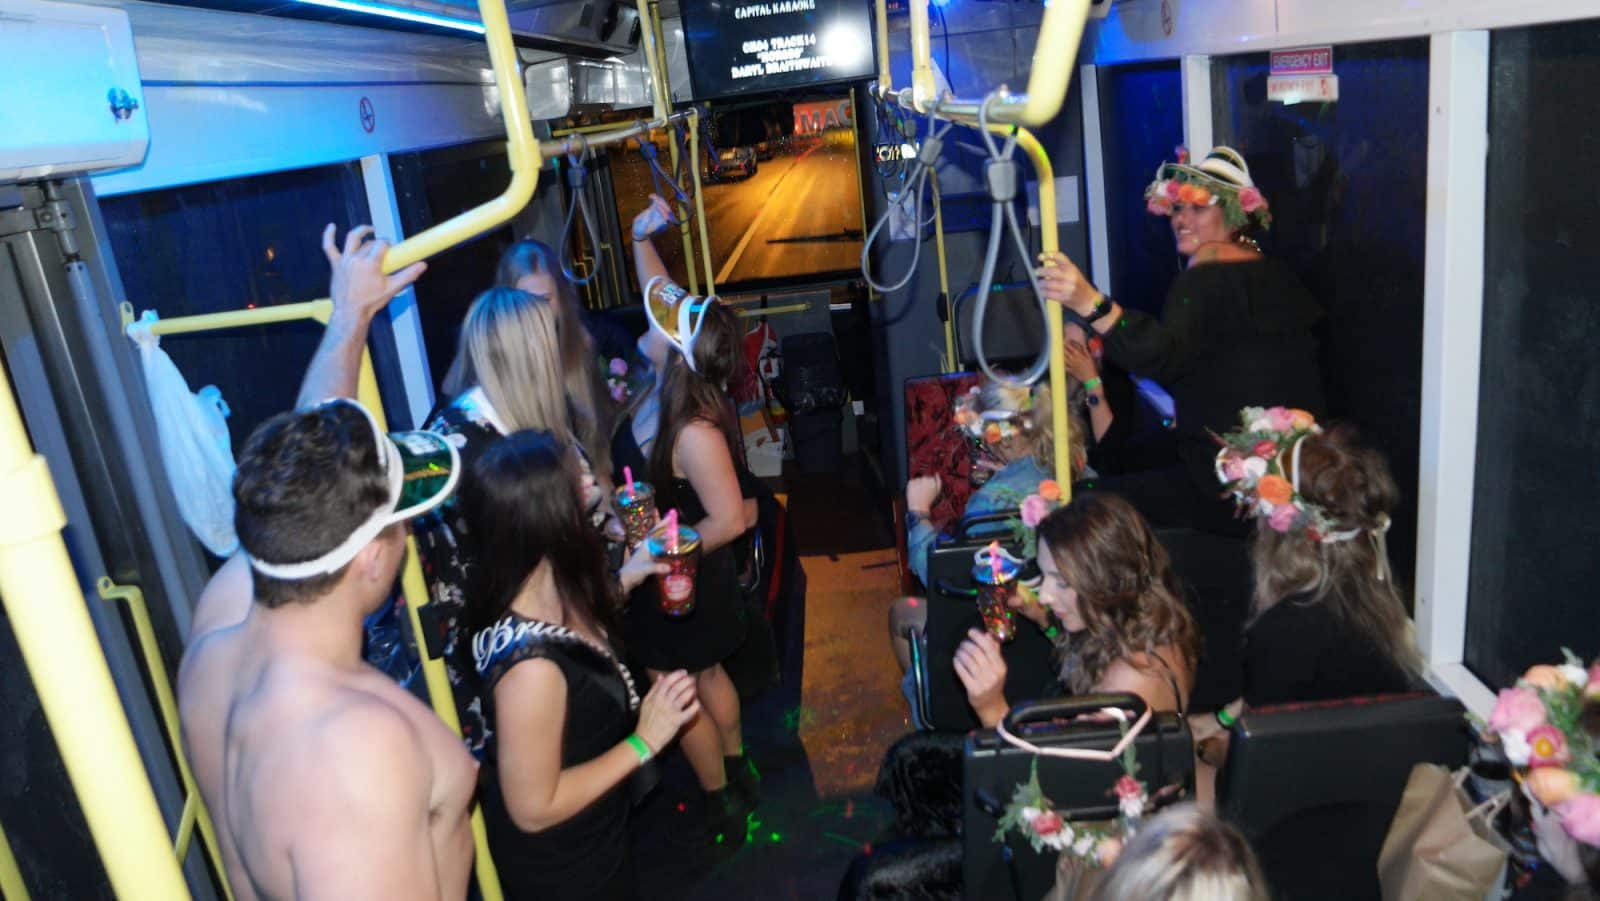 Why Try a Party Bus? - Party Bus